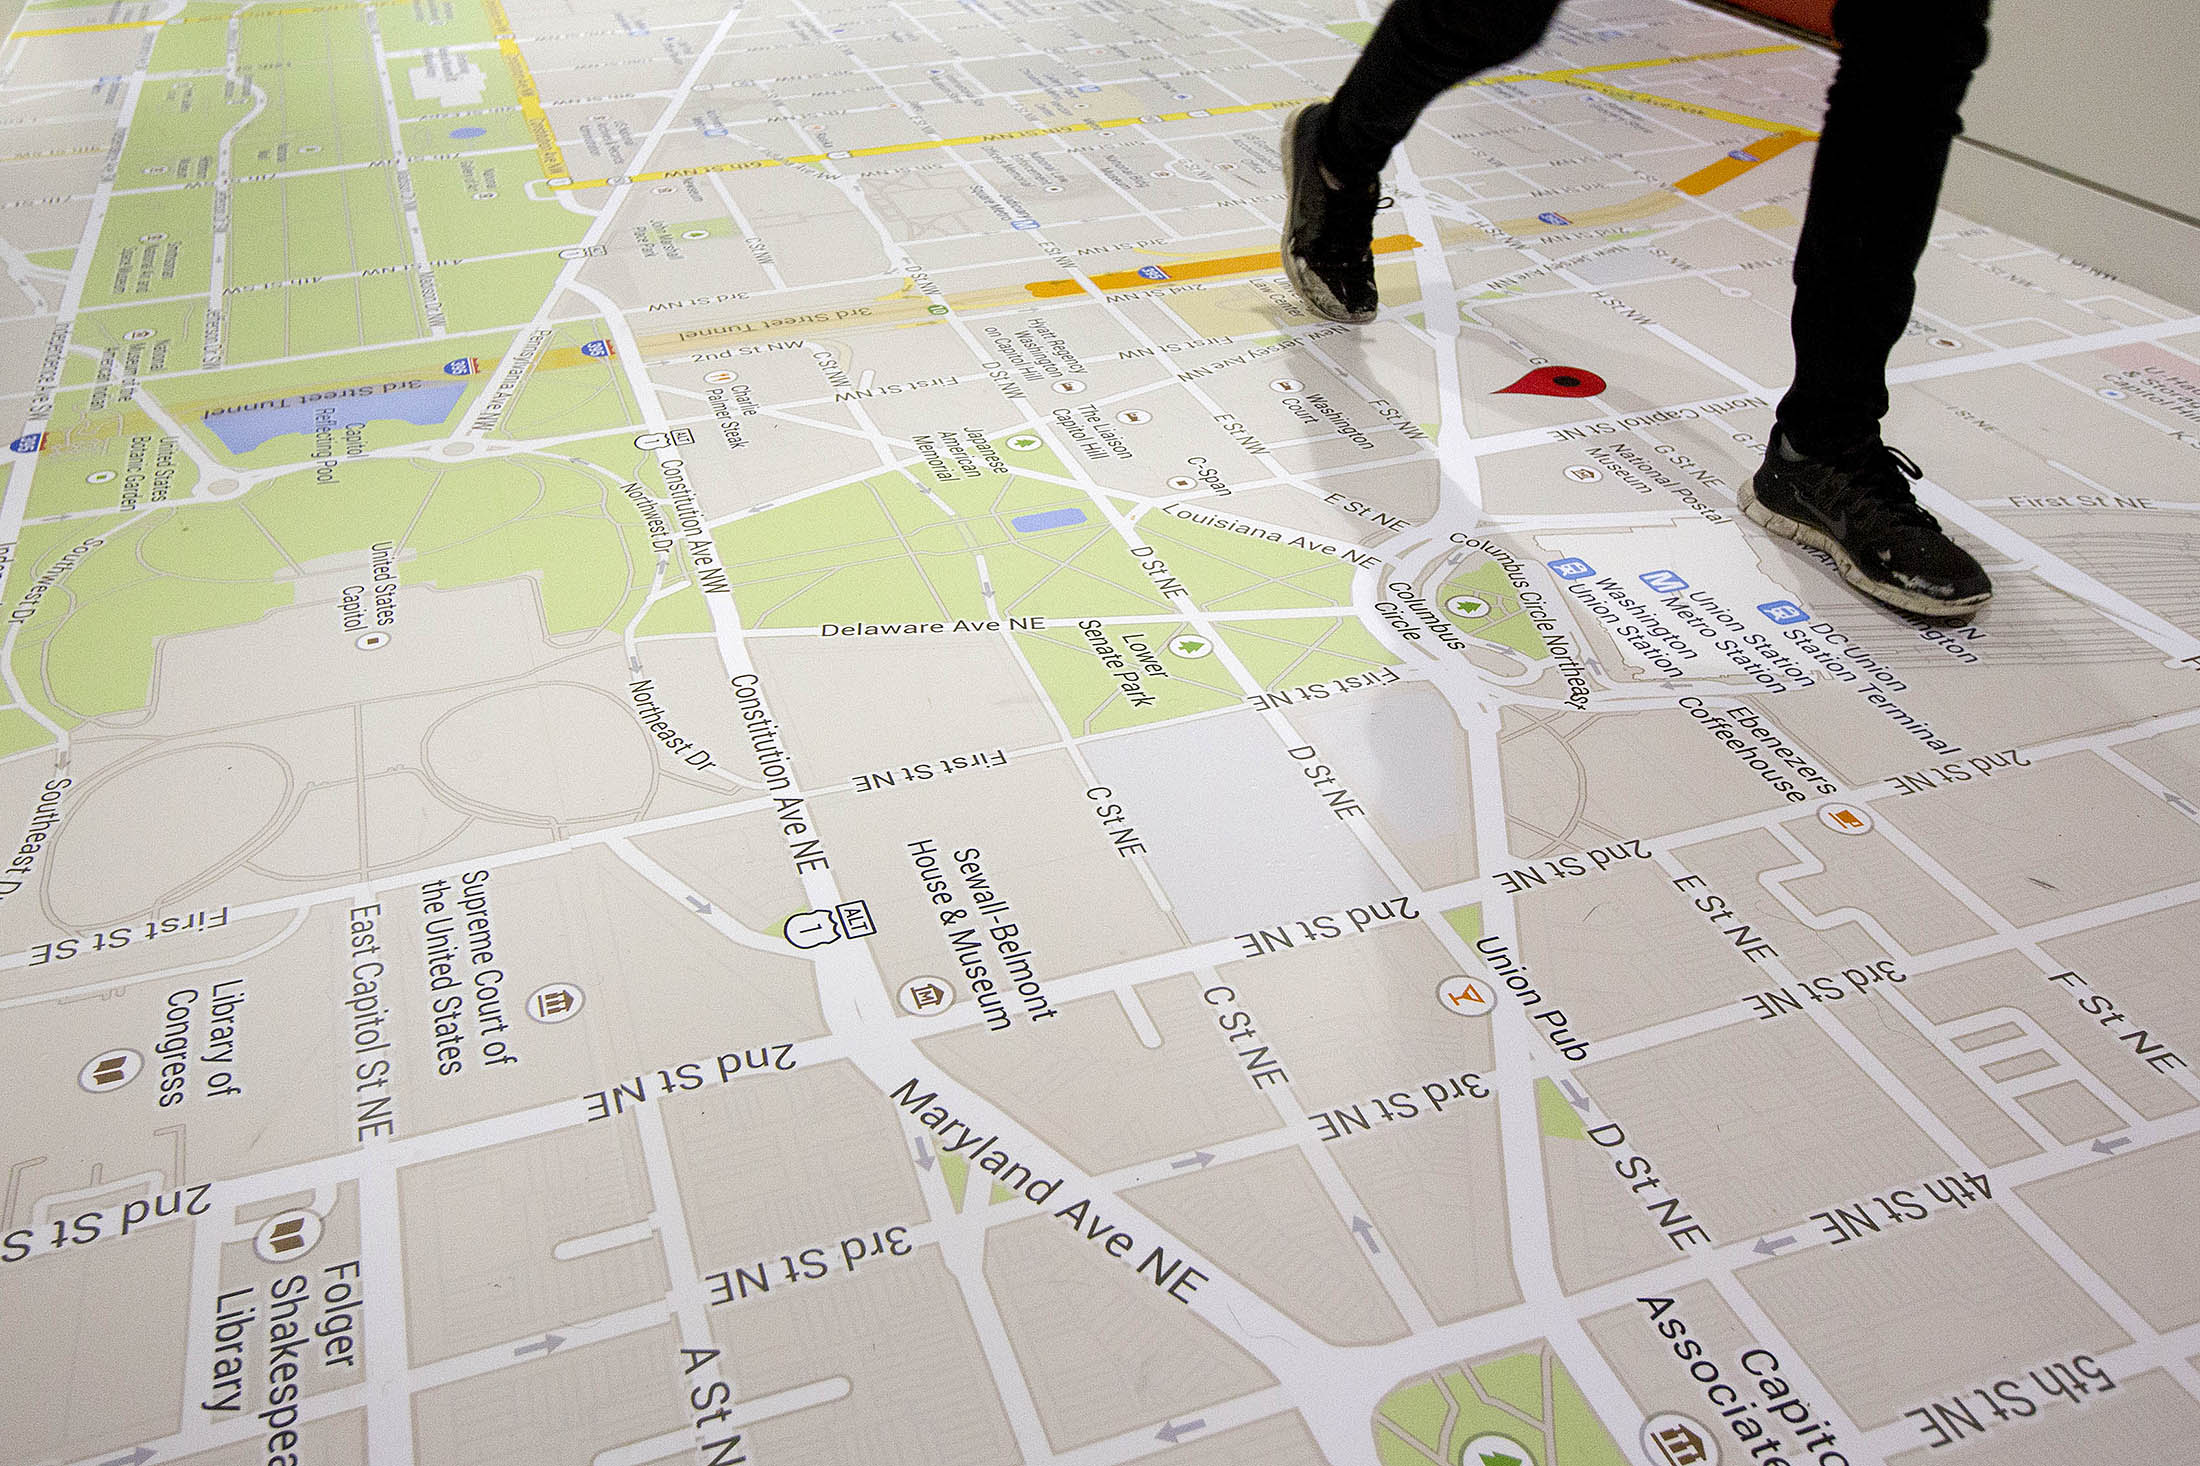 Google Plans to Map the Interior World in 3-D